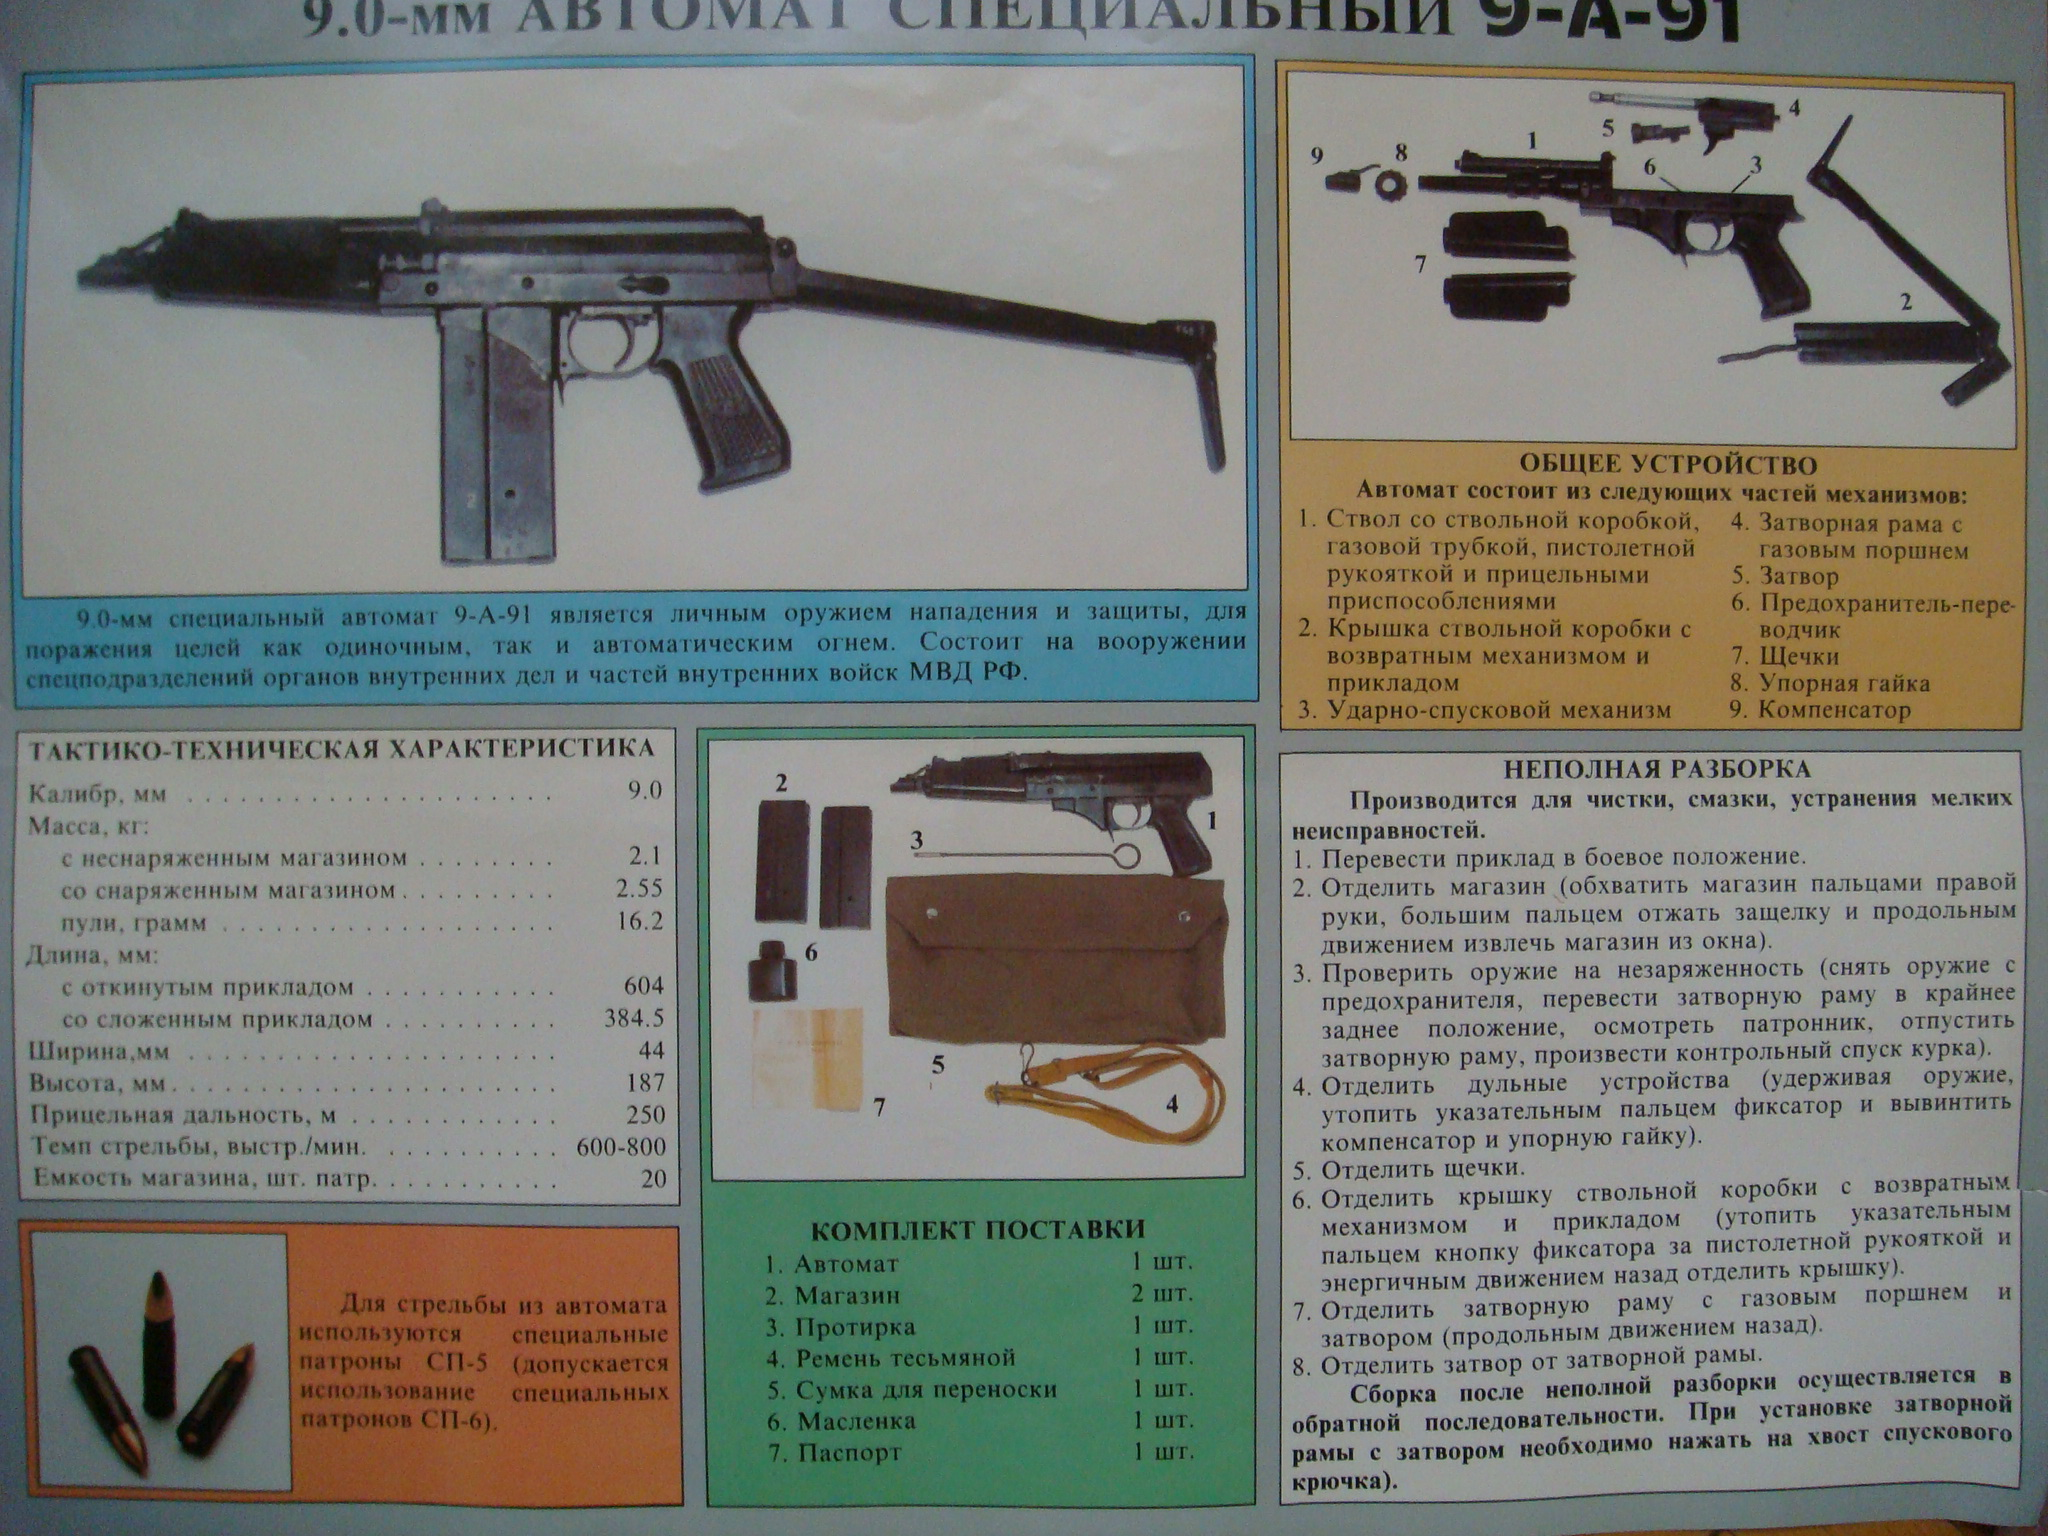 9.0 mm Automatic special 9-A-91